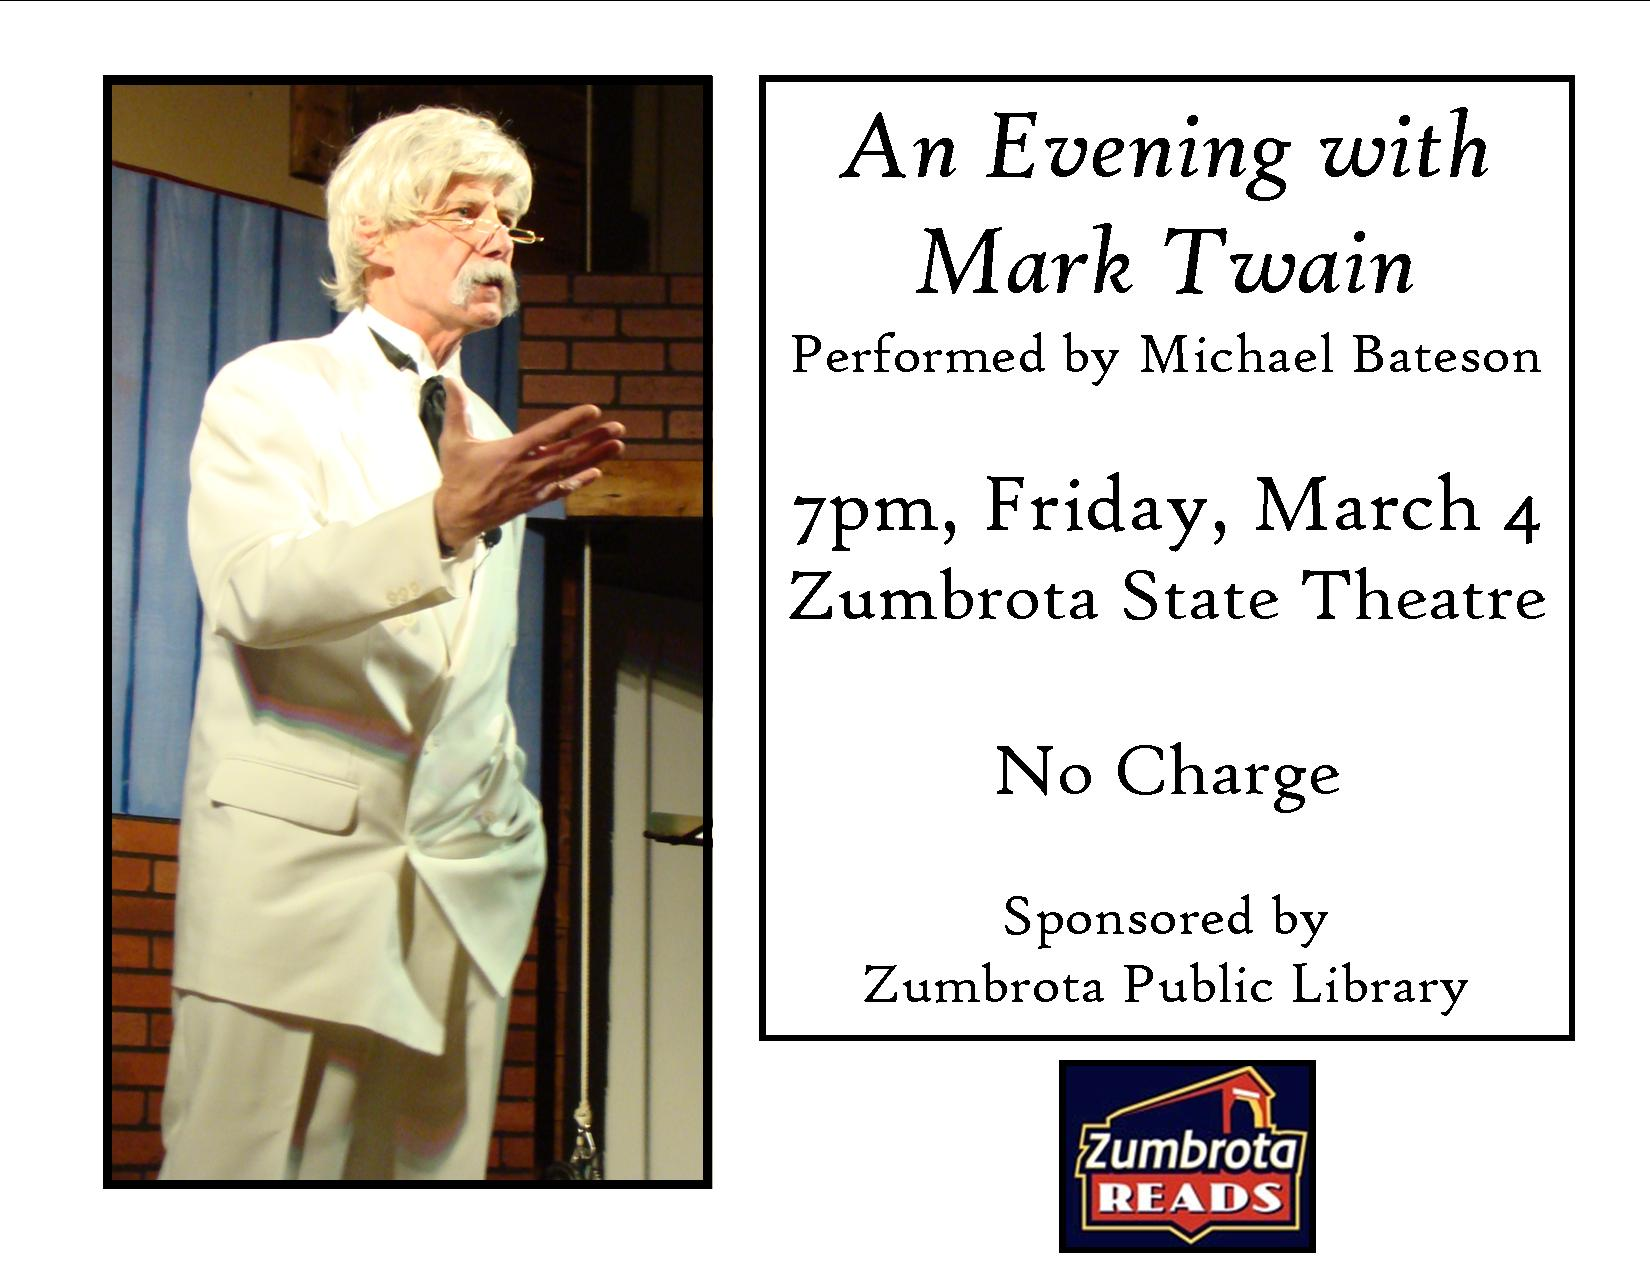 an evening with mark twain poster